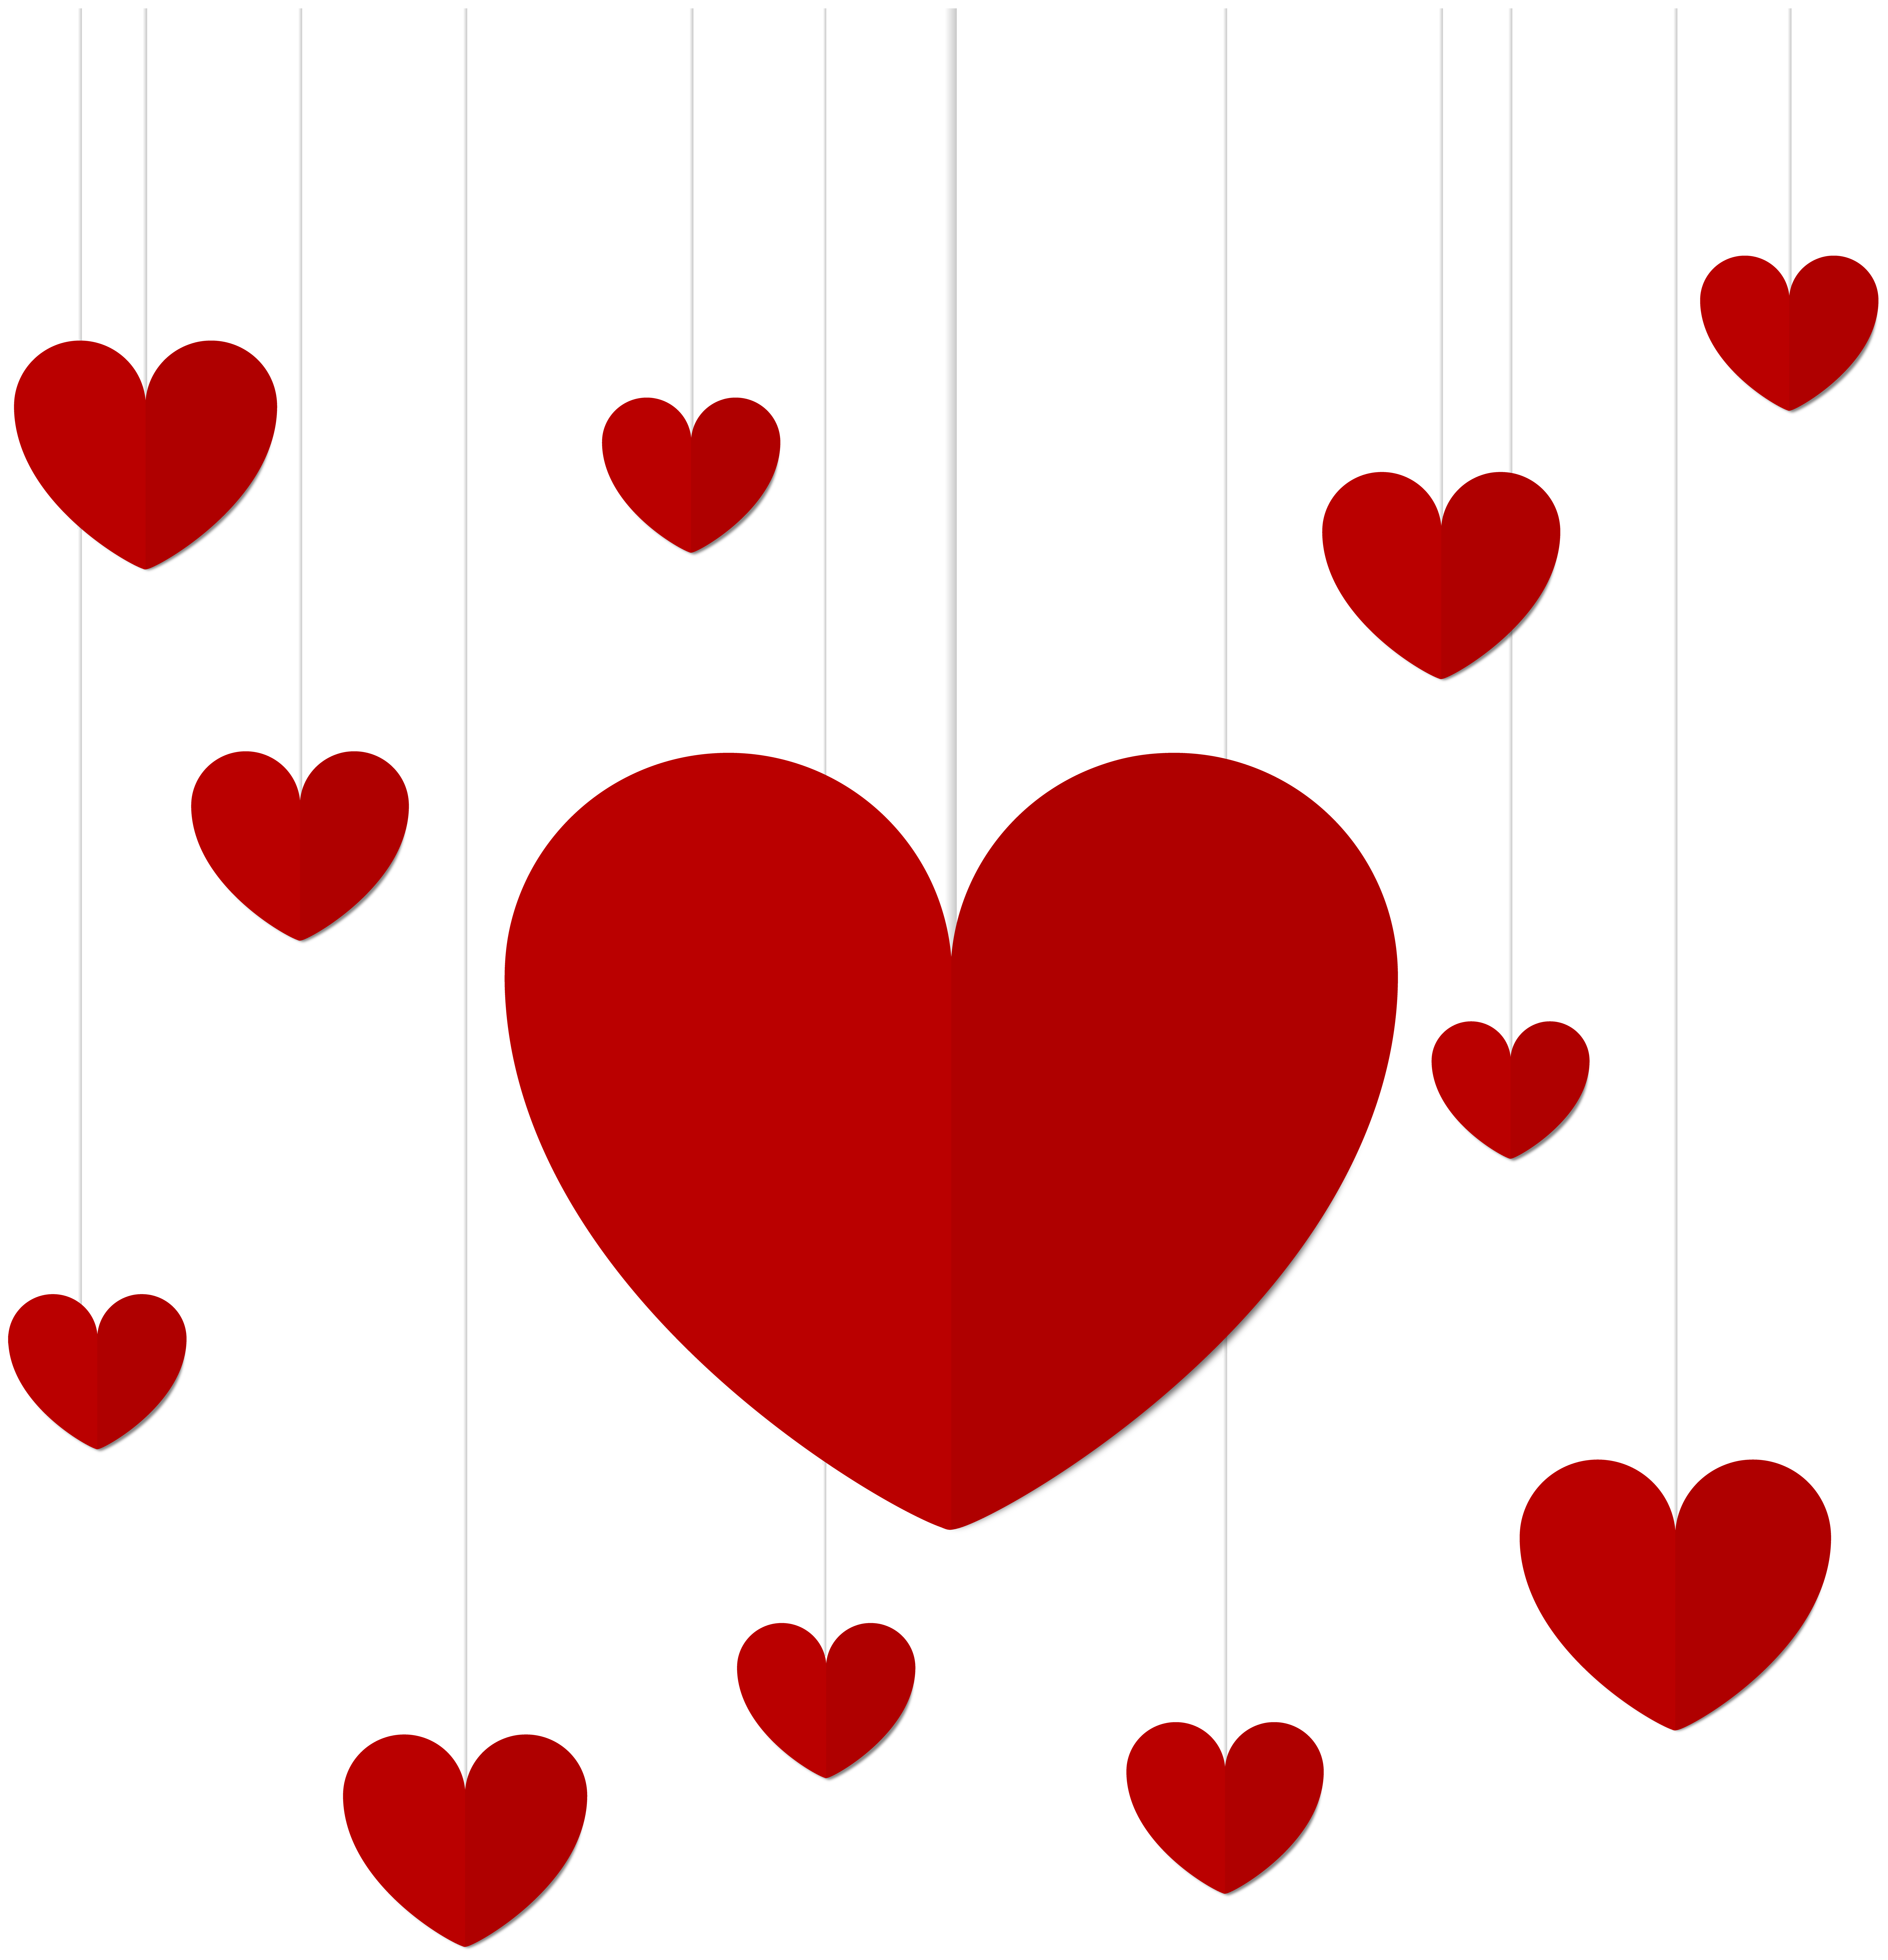 Hanging heart clipart graphic freeuse download Hanging Hearts Decor PNG Clip Art | Gallery Yopriceville - High ... graphic freeuse download